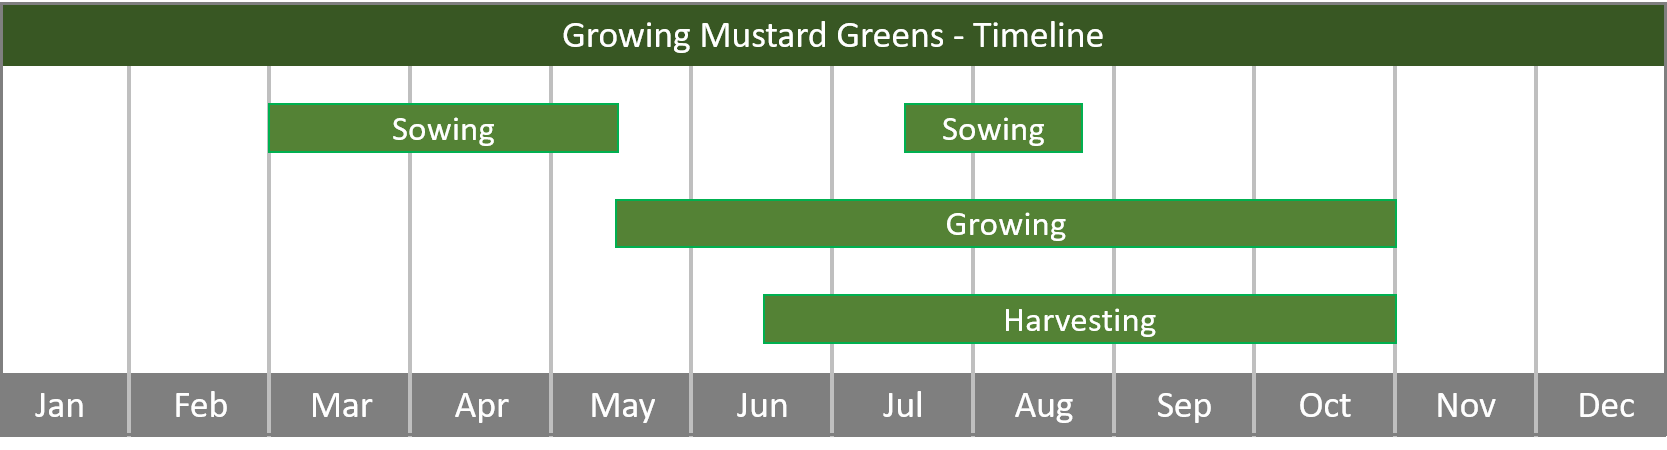 how to grow mustard greens from seed to harvest at home timeline